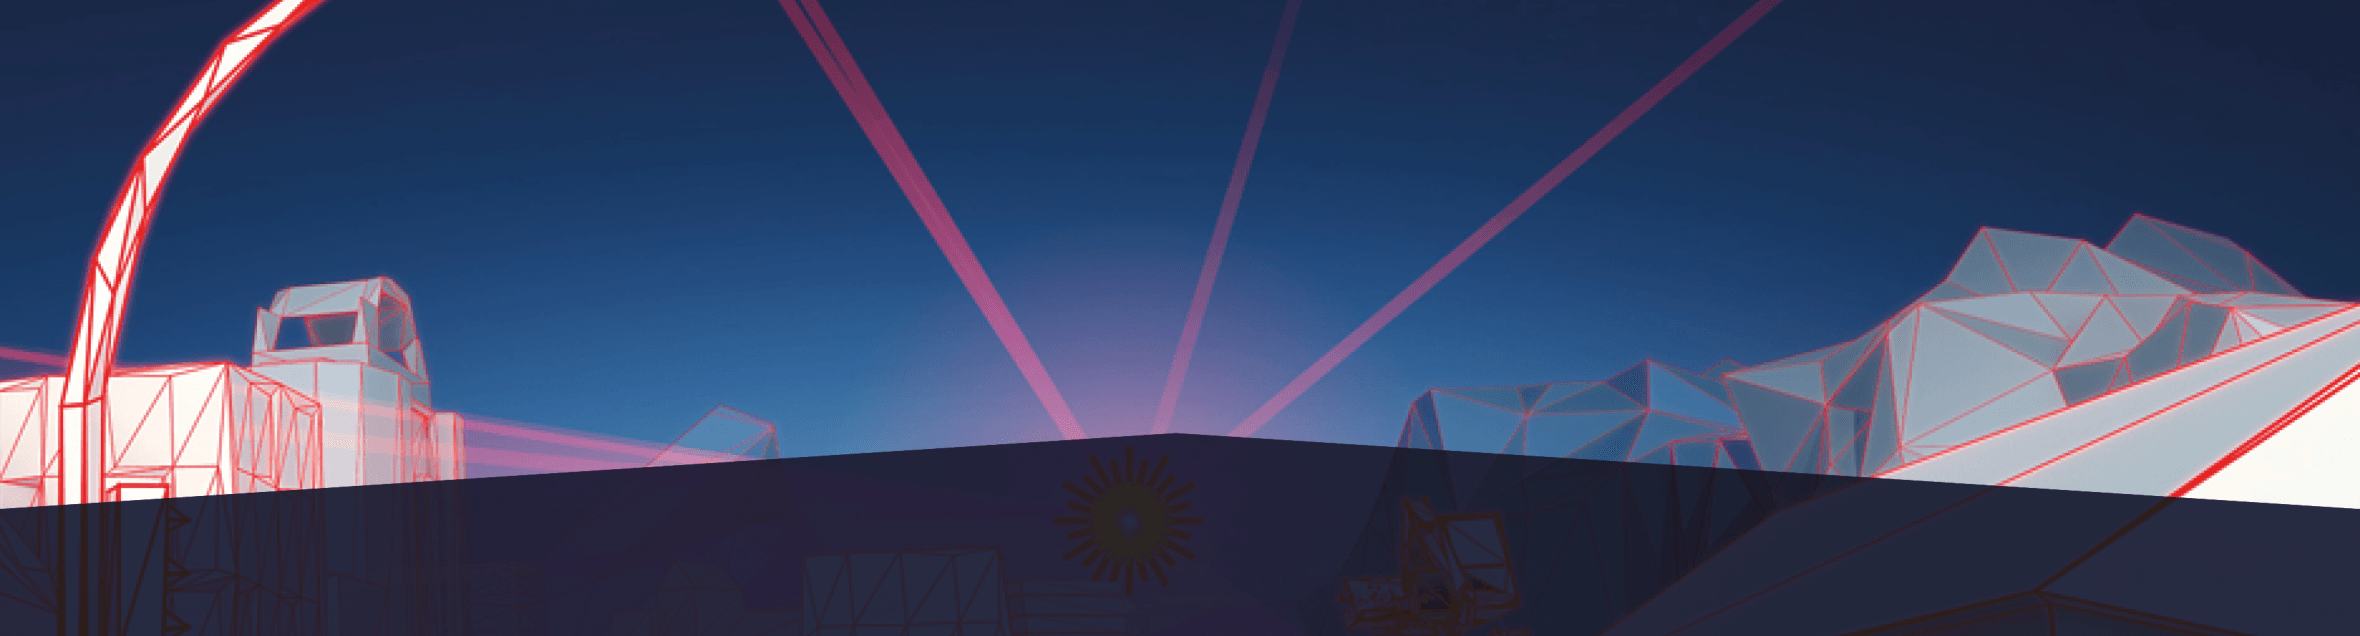 Lasertopo_website_header_02.png